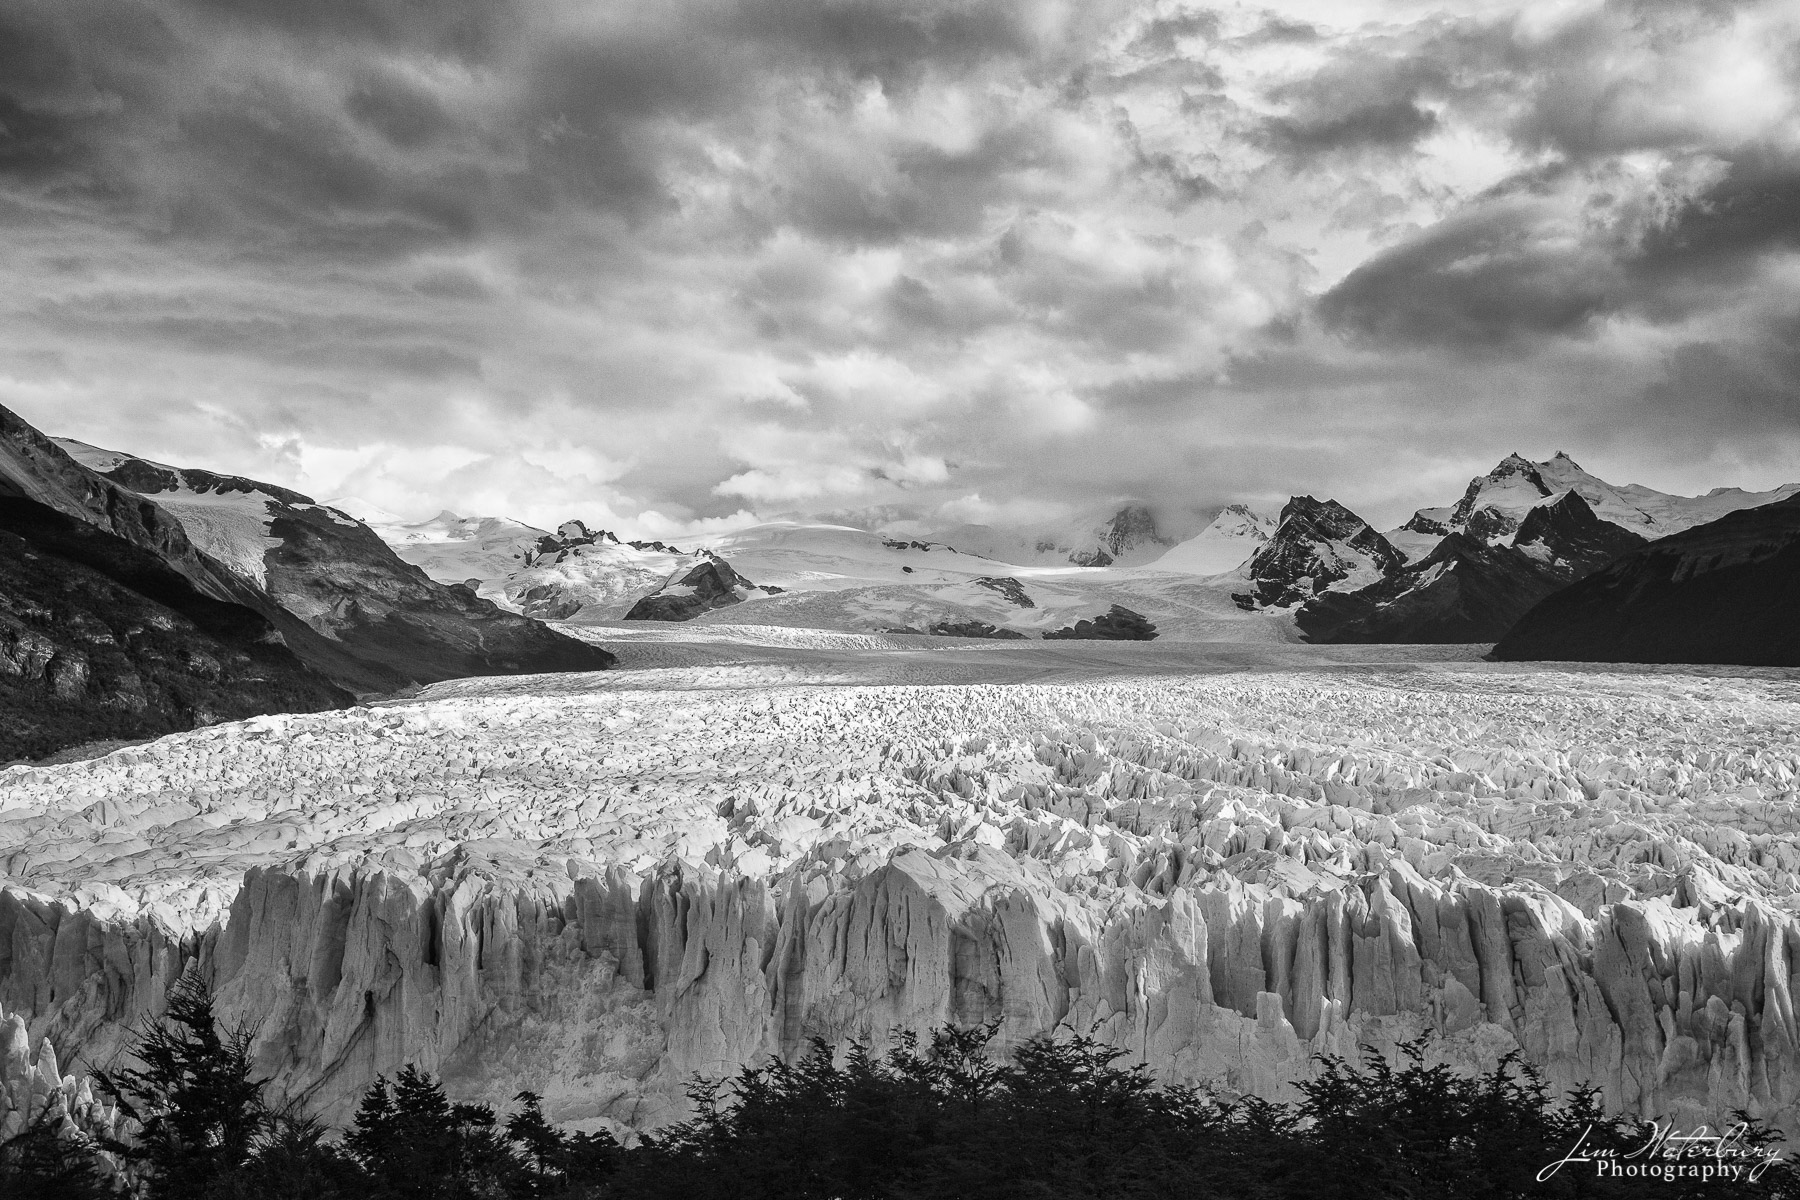 Black & White image looking back from the leading edge of the Perito Moreno Glacier in Los Glaciares National Park in Argentina...